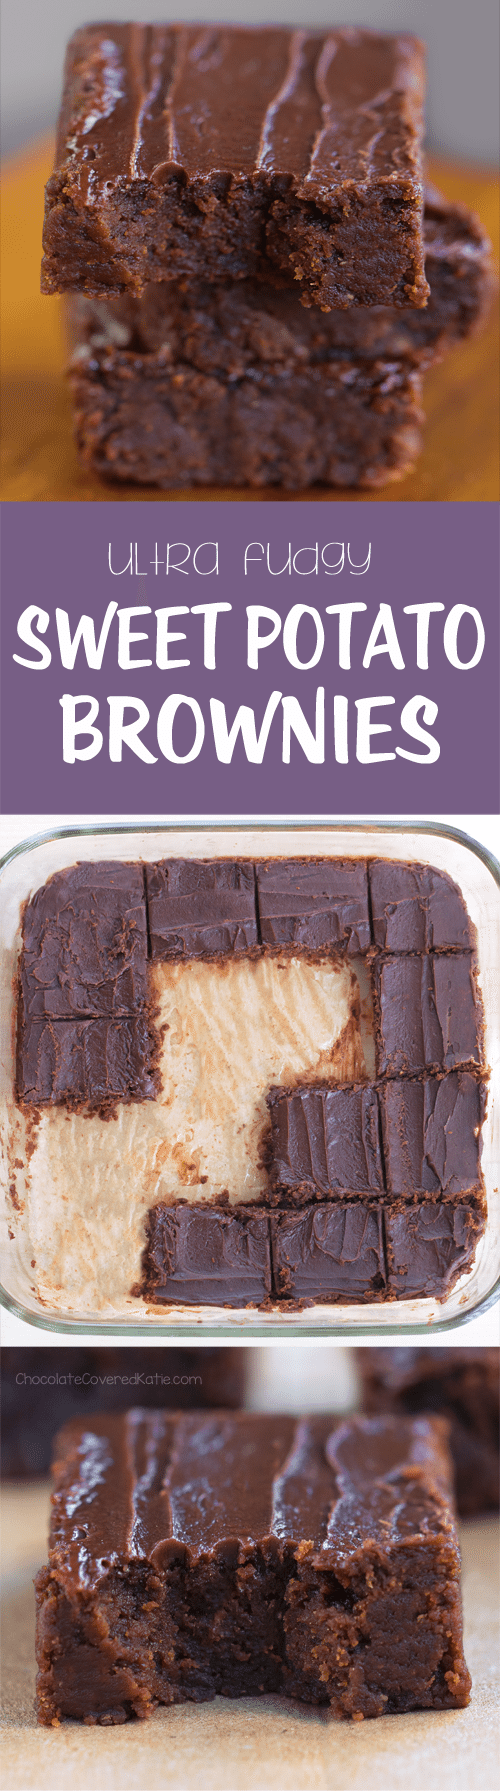 Super Easy Sweet Potato Brownies!